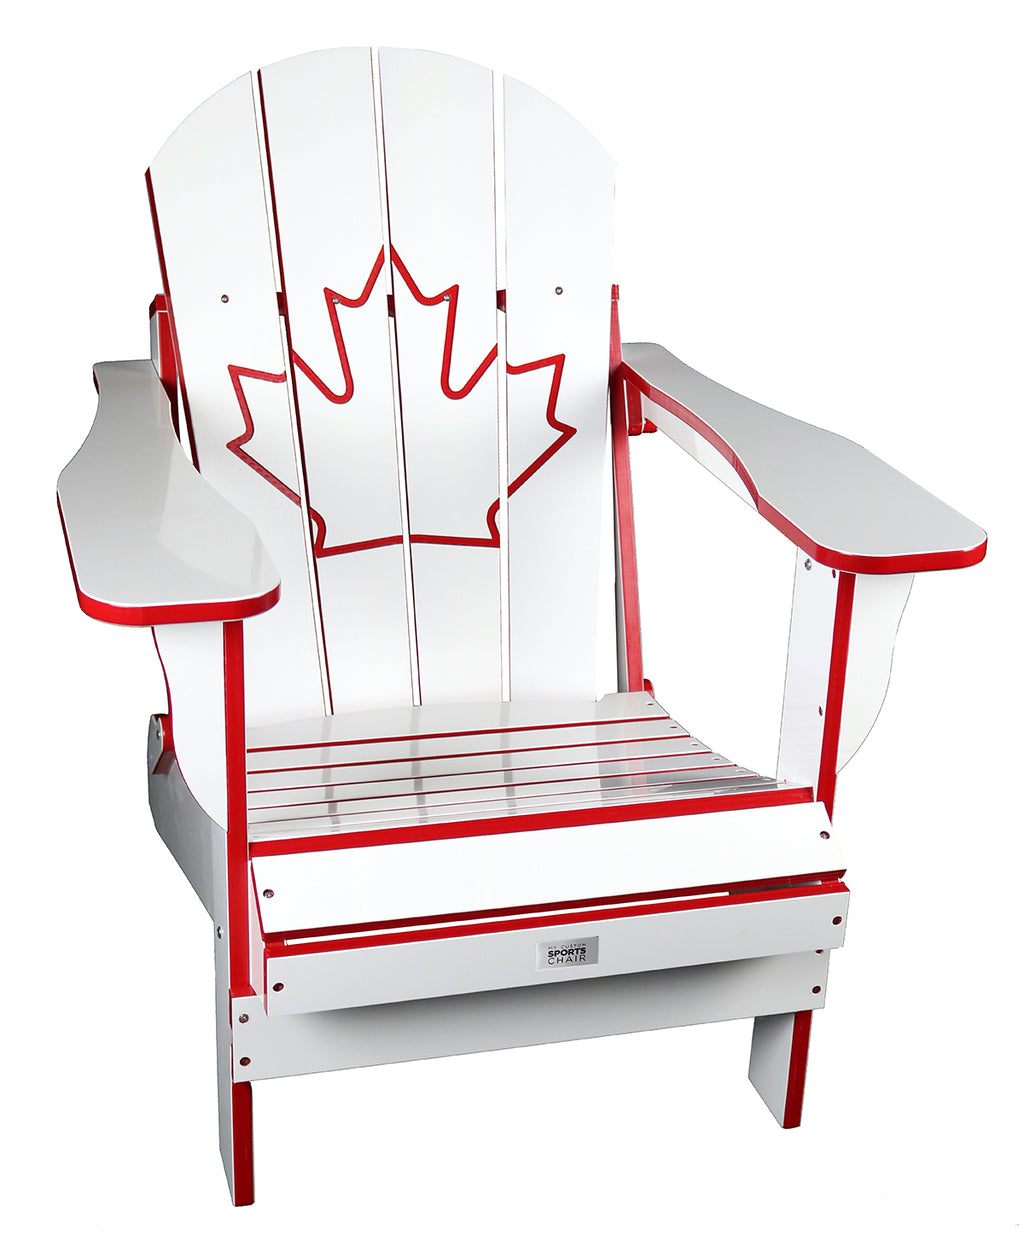 TL White/Red Canada Folding